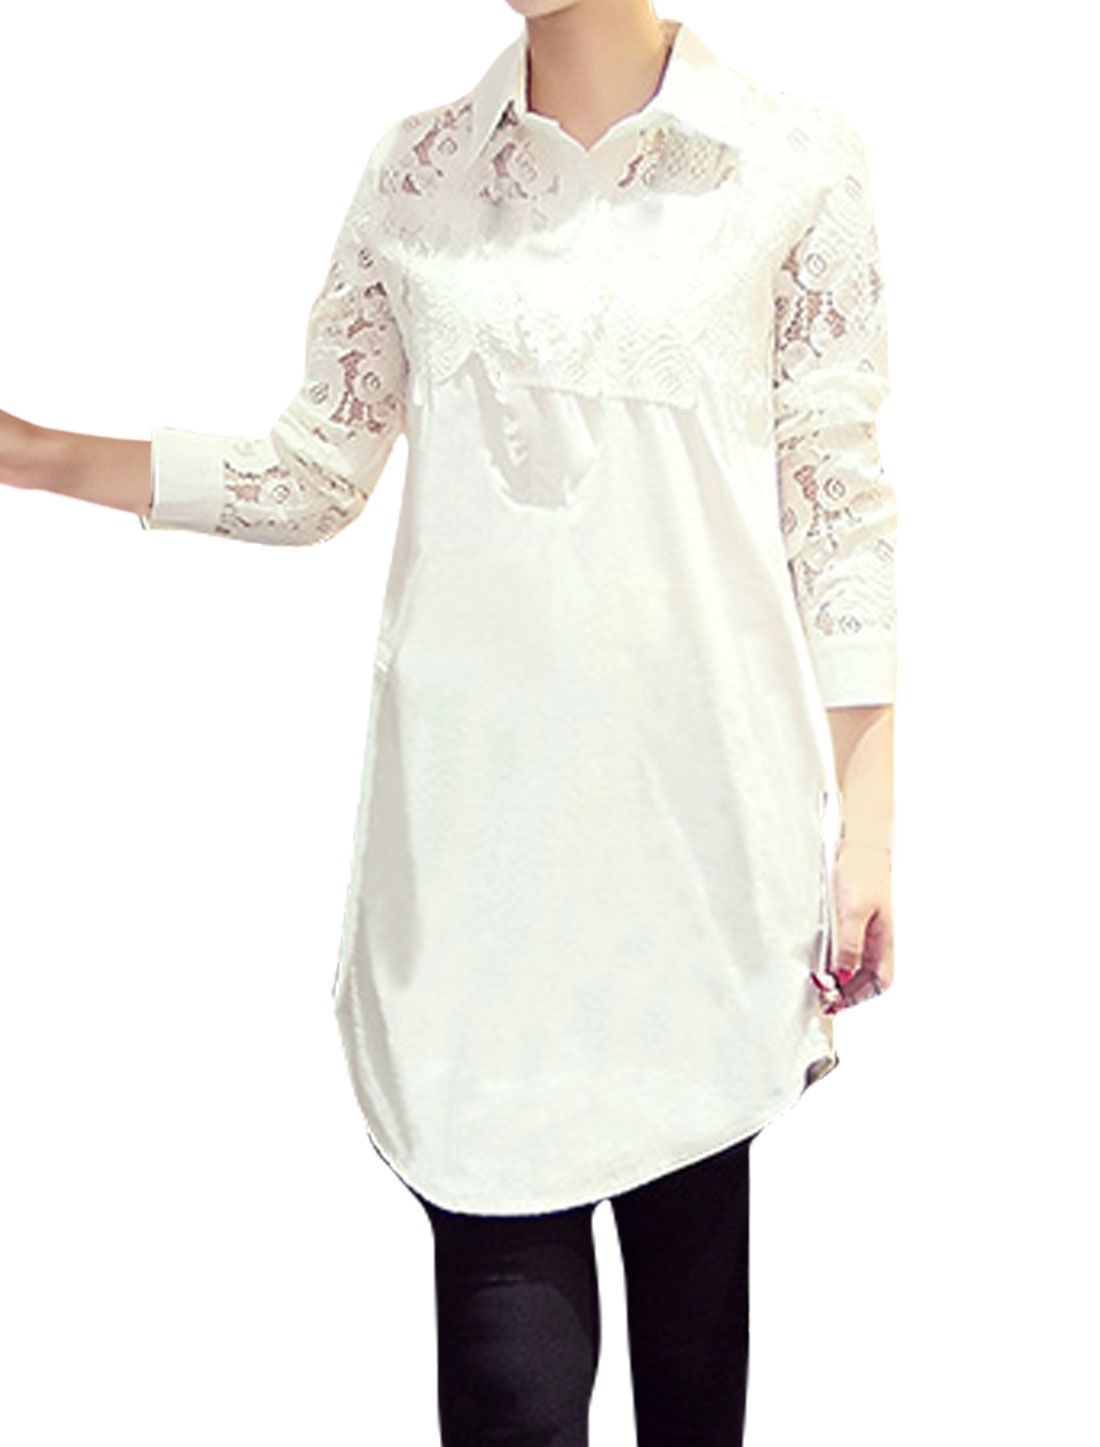 Women Collared Lace Panel Round Hem Tunic Blouse White XS